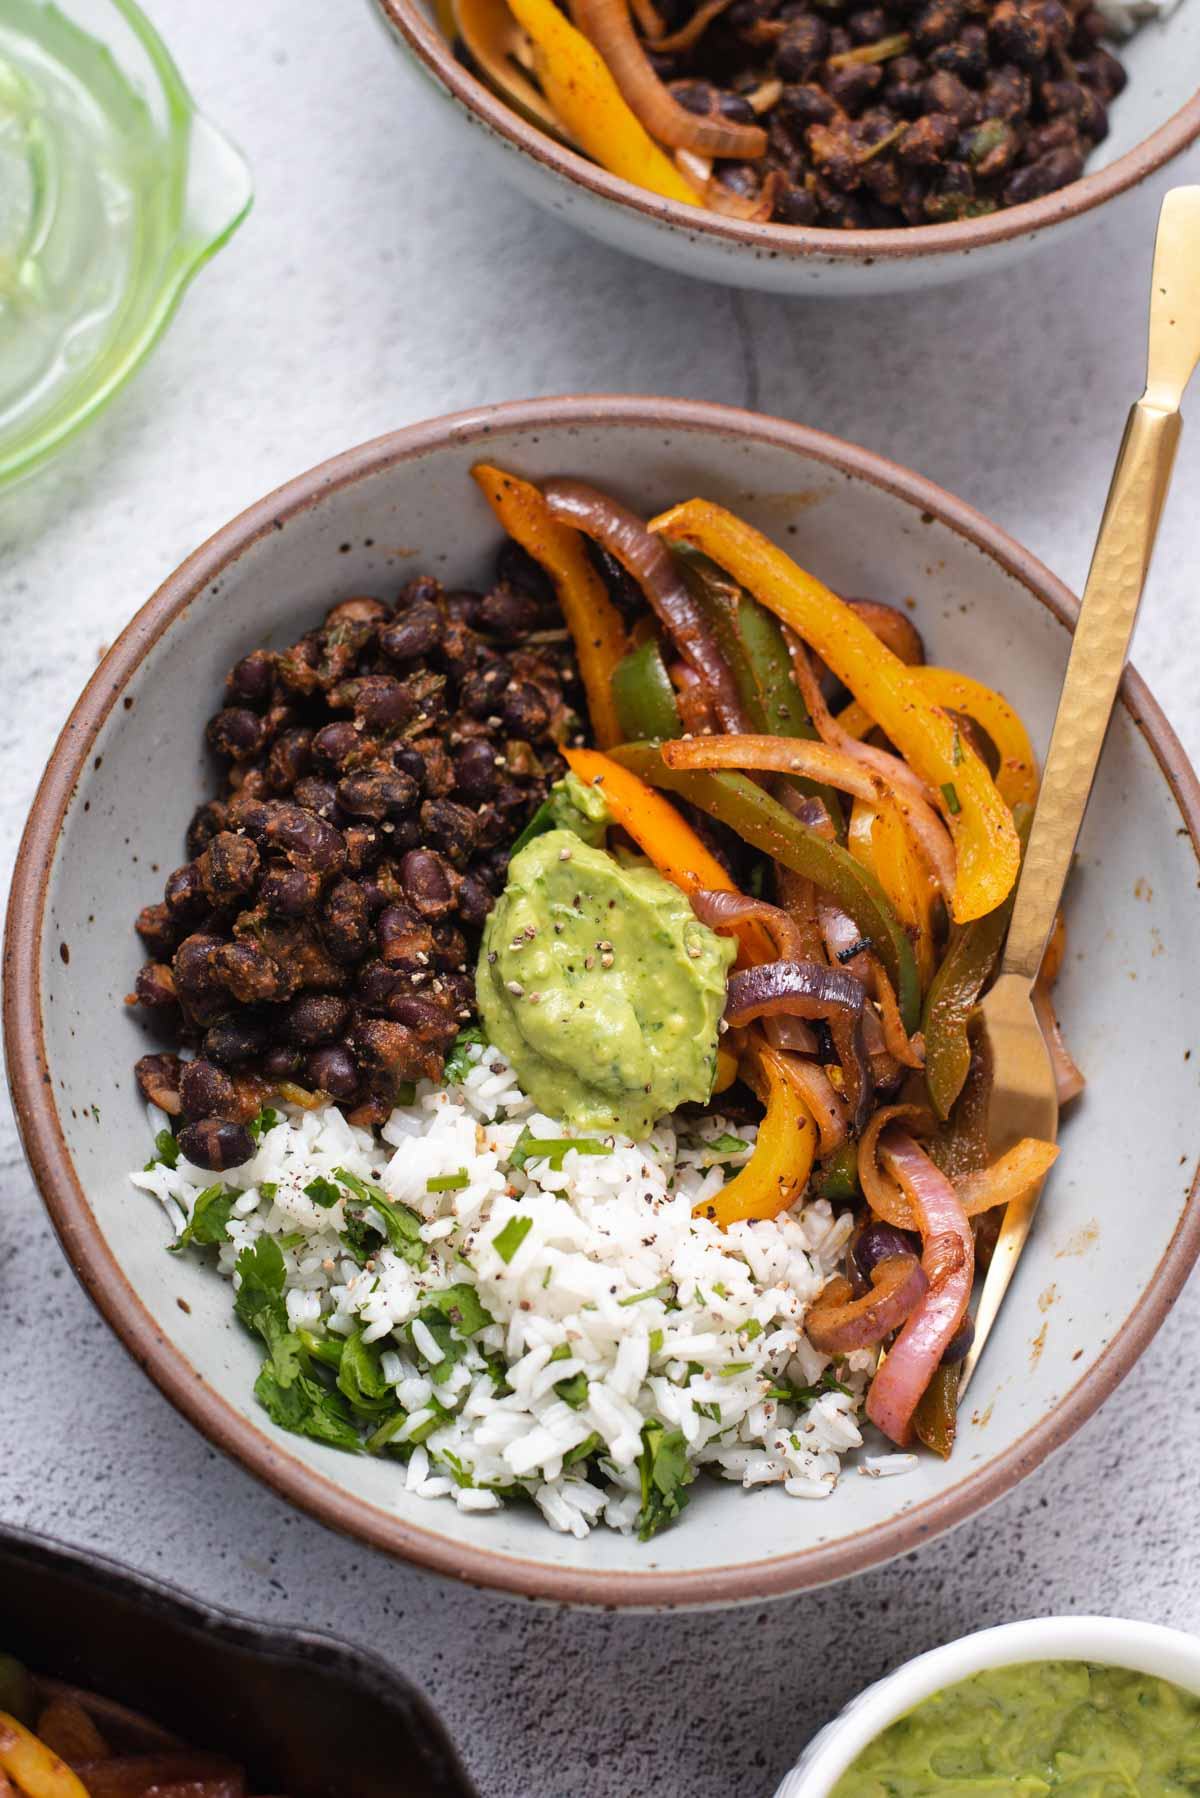 Overhead view of gray bowl filled with rice, fajita veggies, avocado cream and black beans